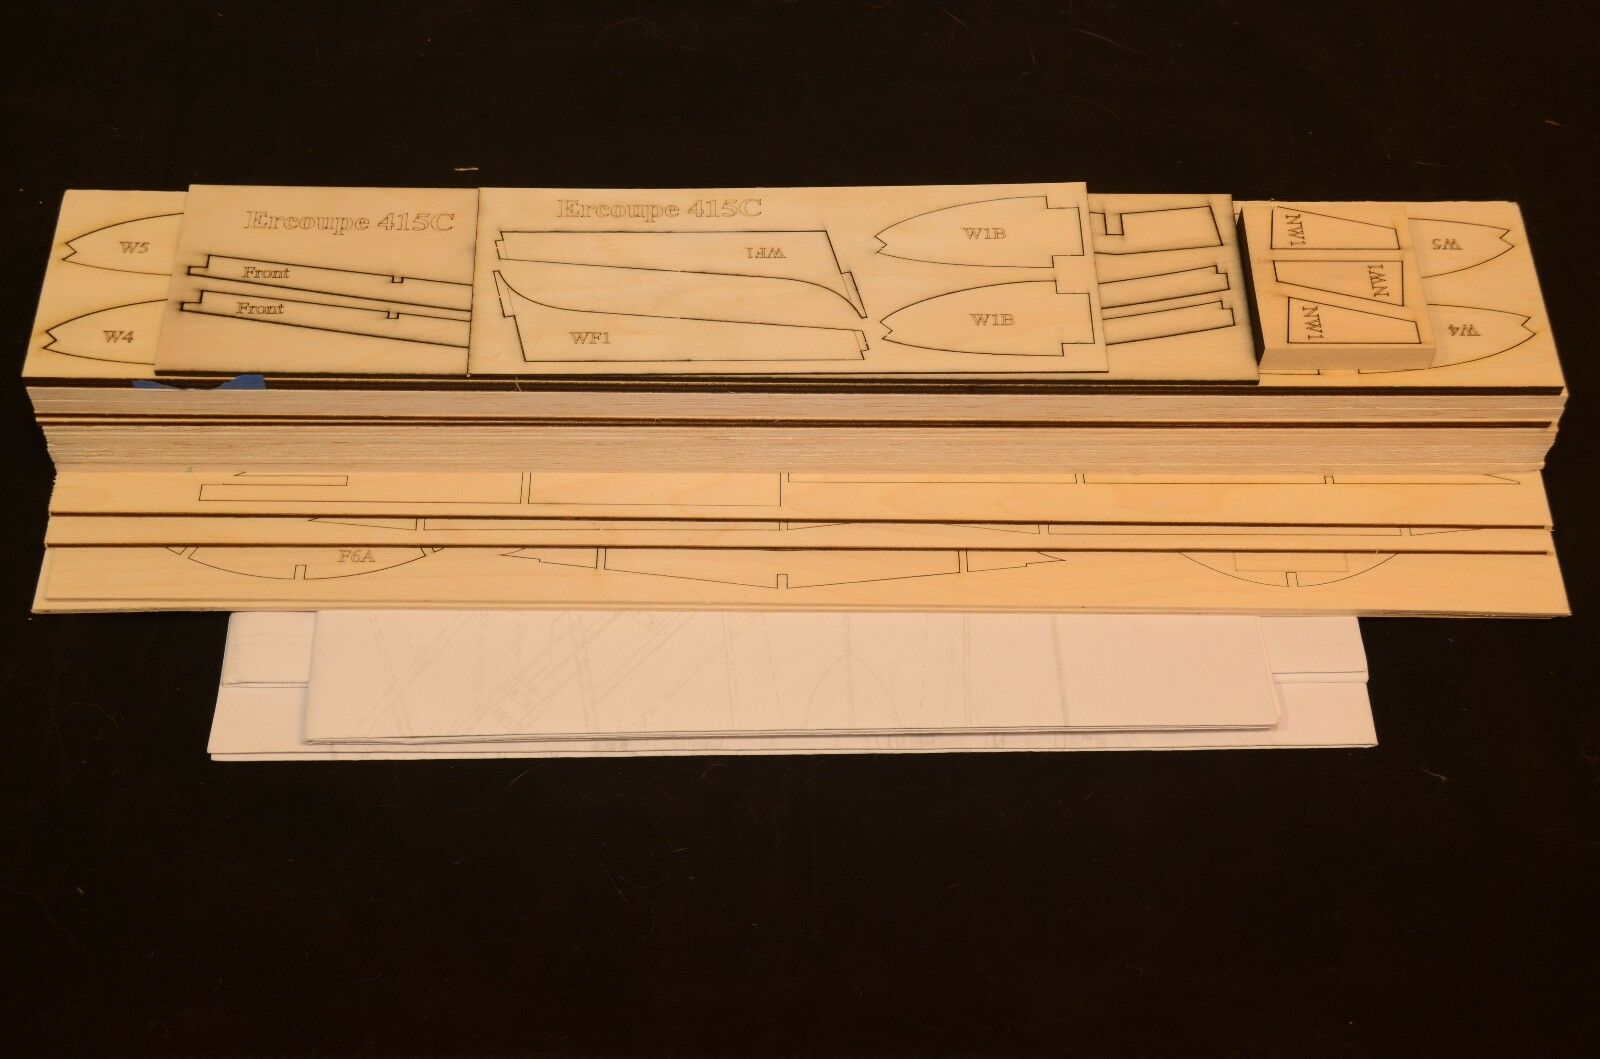 Giant 1 4.5 Scale ERCOUPE 415C Laser Cut Short Kit & Plans 80 in. wing span